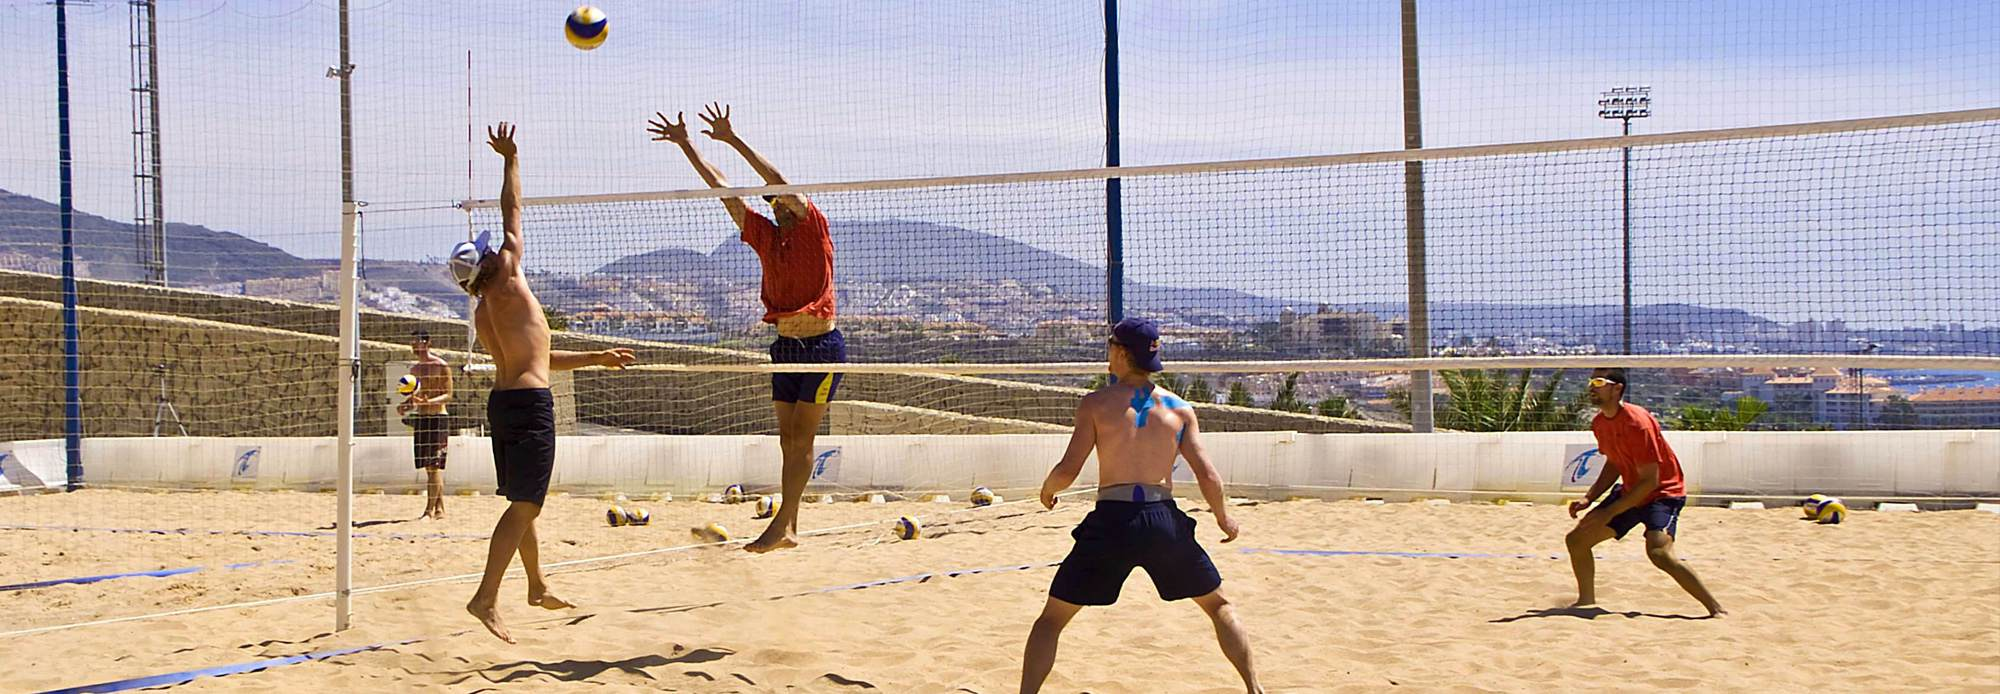 2 vs 2 of the German beach volleyball national team against the Spanish on the beautiful court of Tenerife Top Training